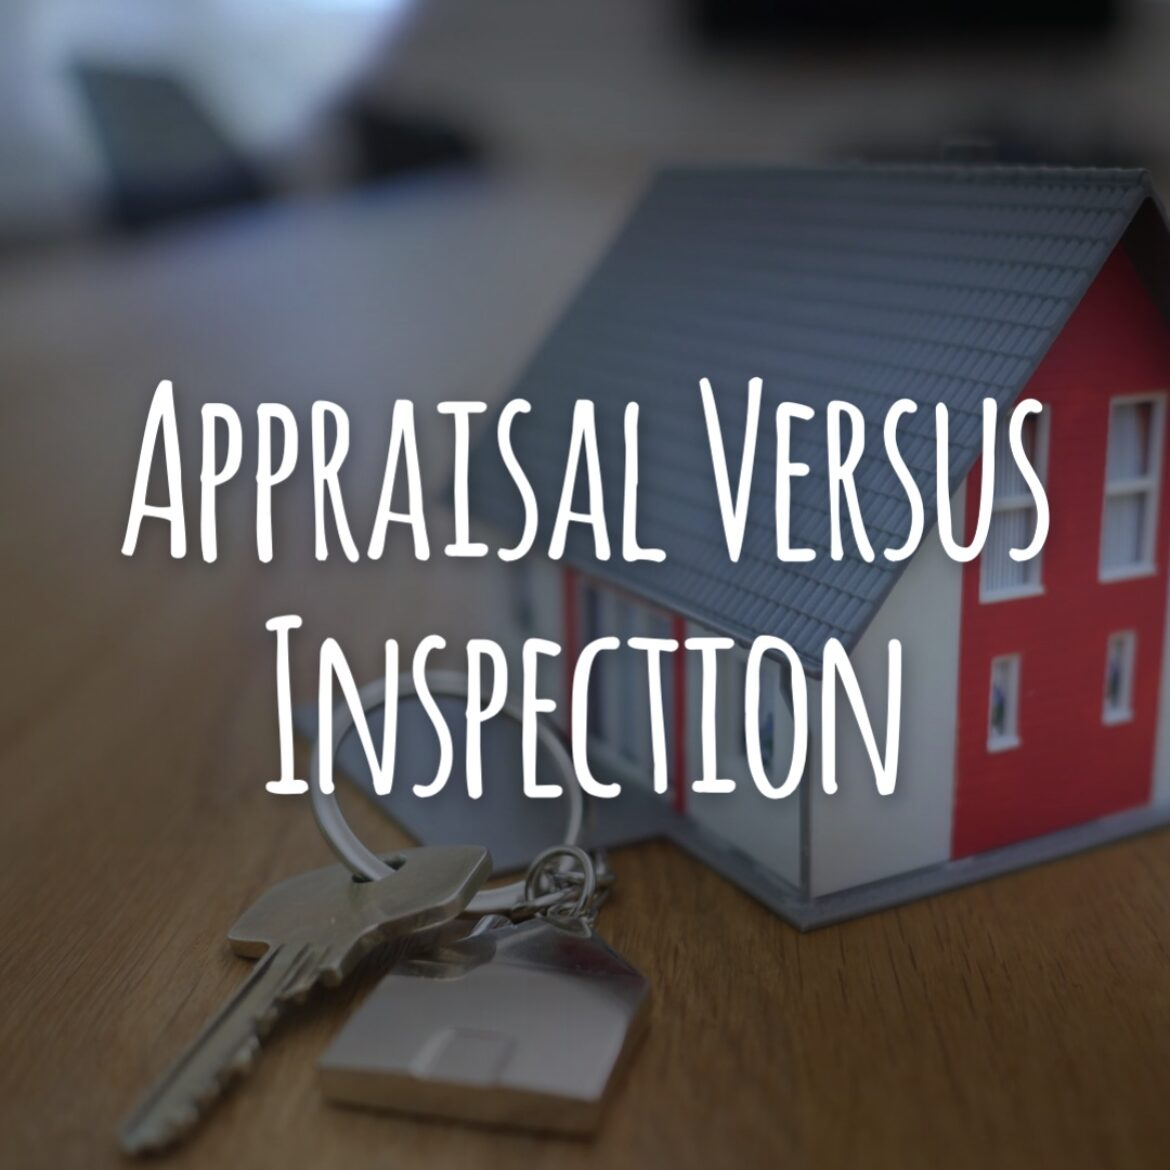 Appraisal Versus Inspection